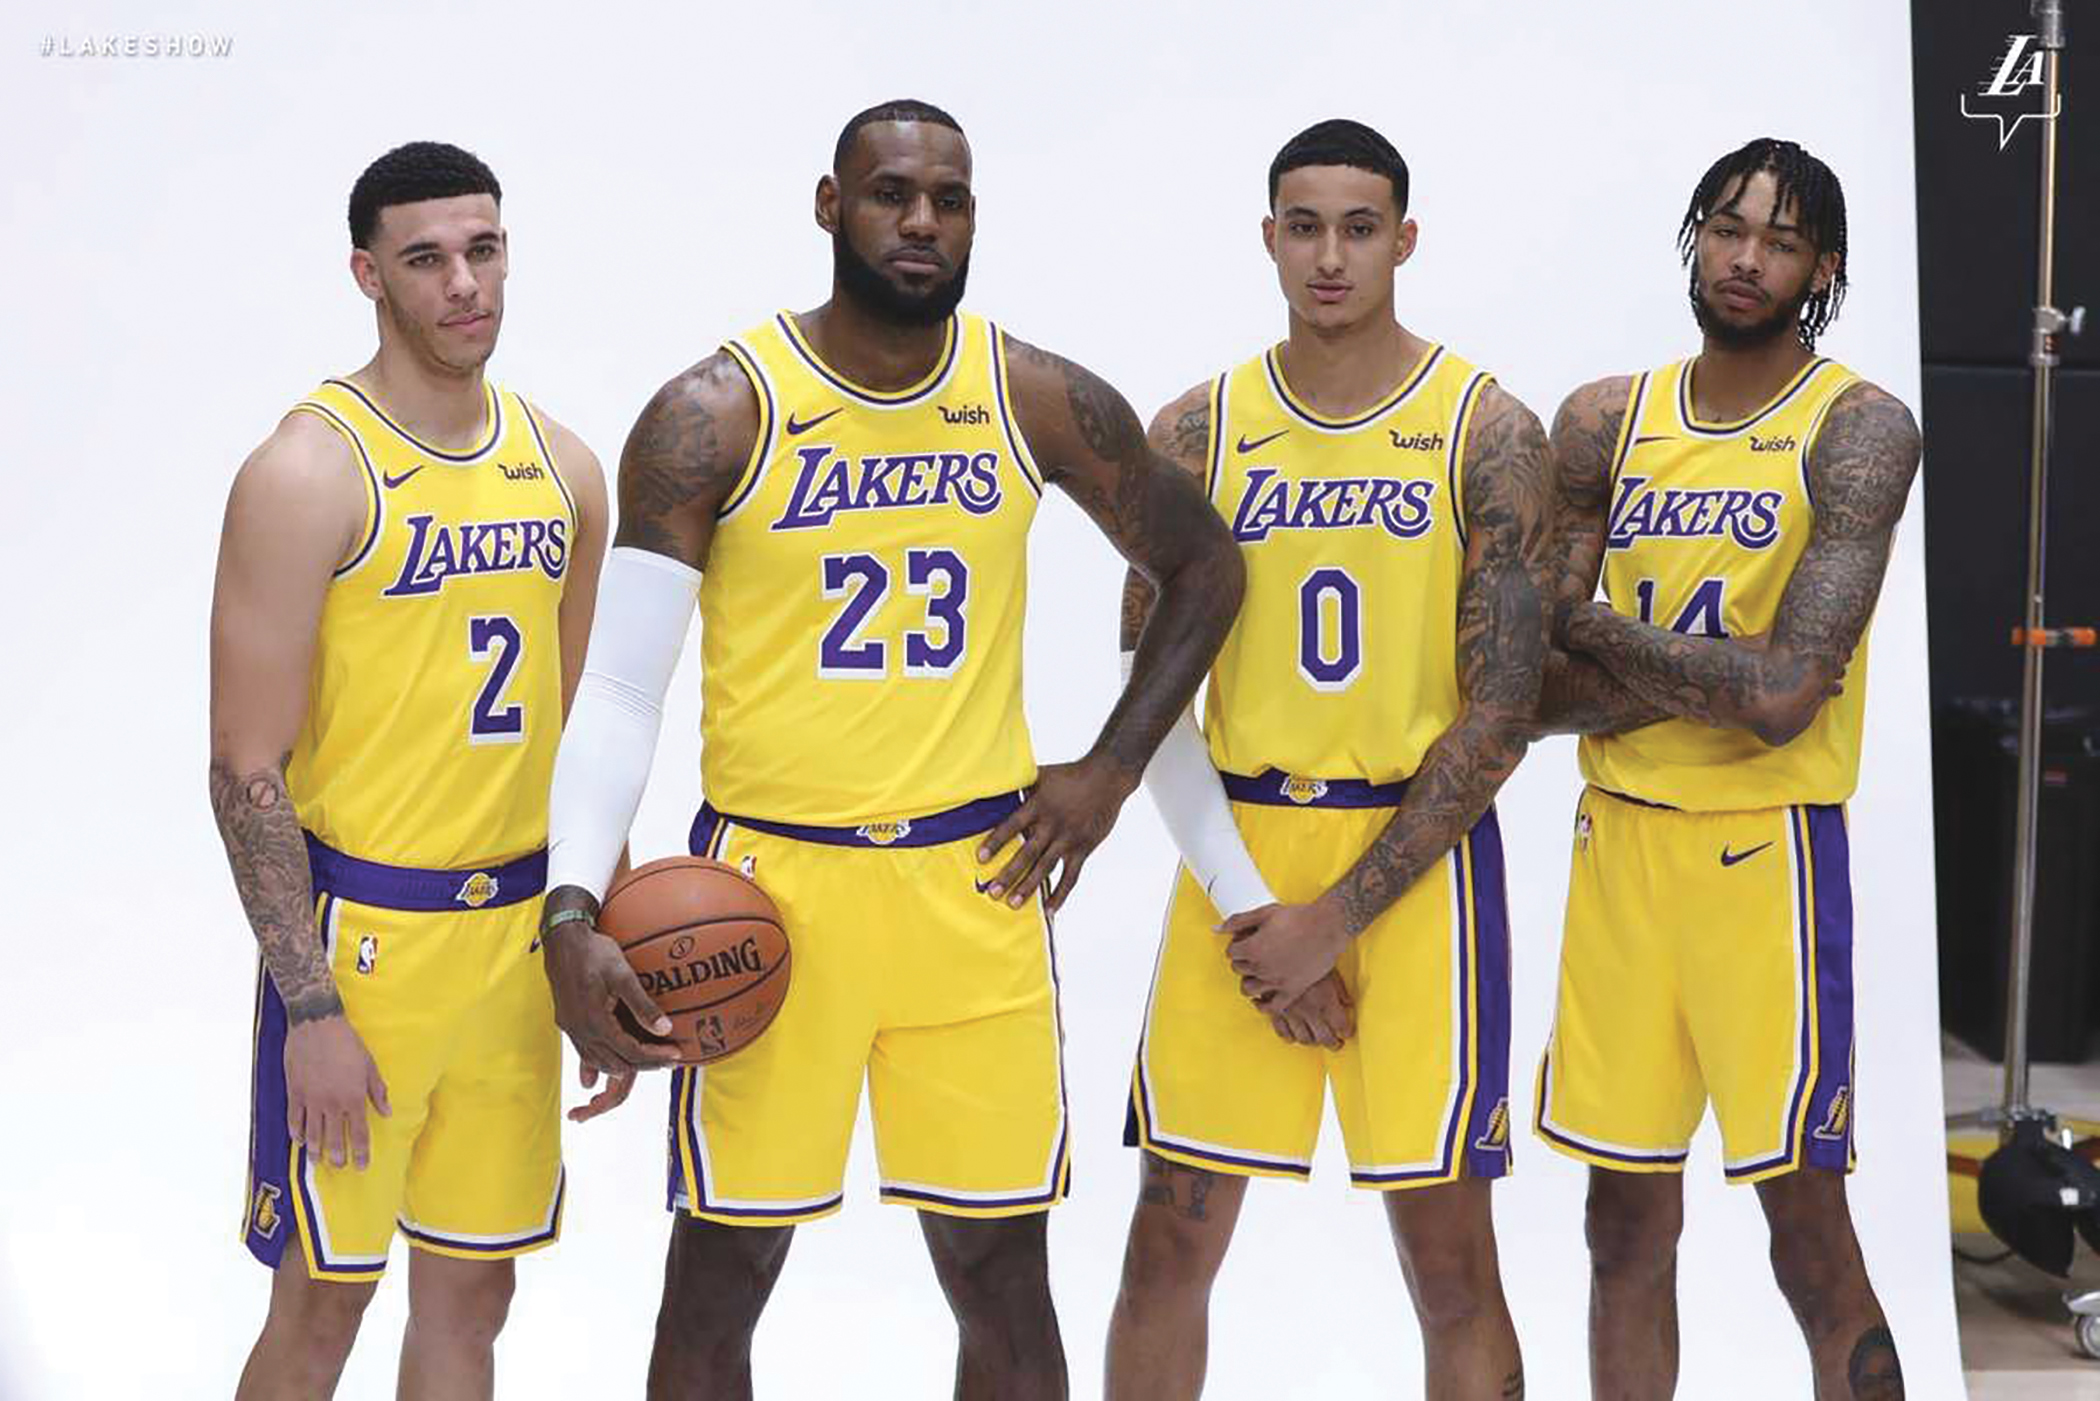 Lonzo Ball, LeBron James, Kyle Kuzma and Brandon Ingram pose for photos during Lakers media day. (Photo: @lakers)